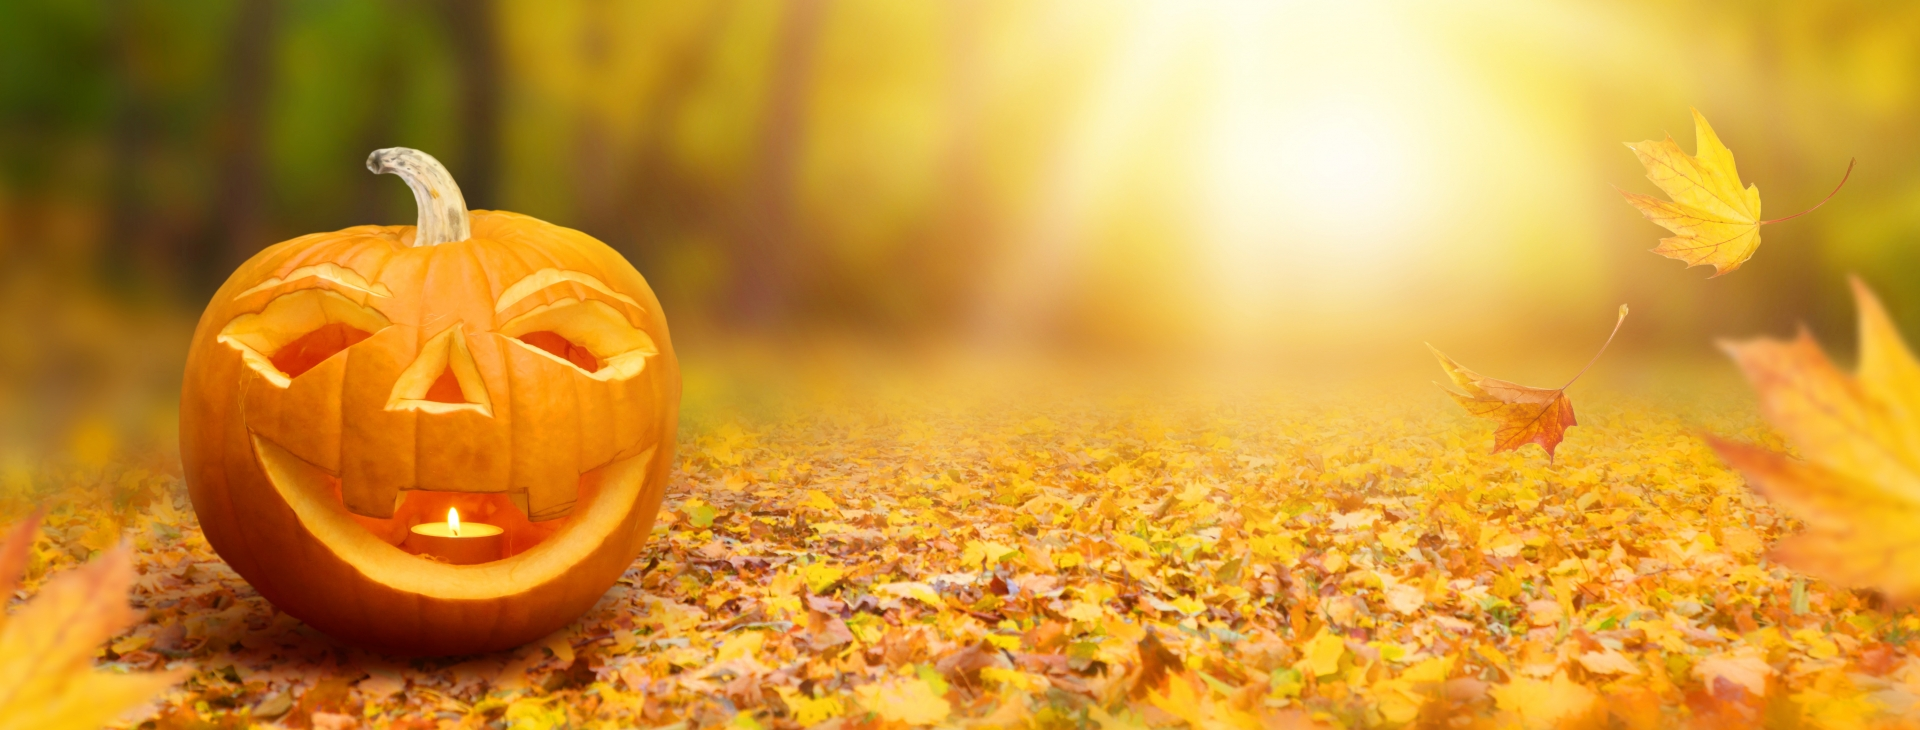 The Magic of Halloween, Autumn, & Change